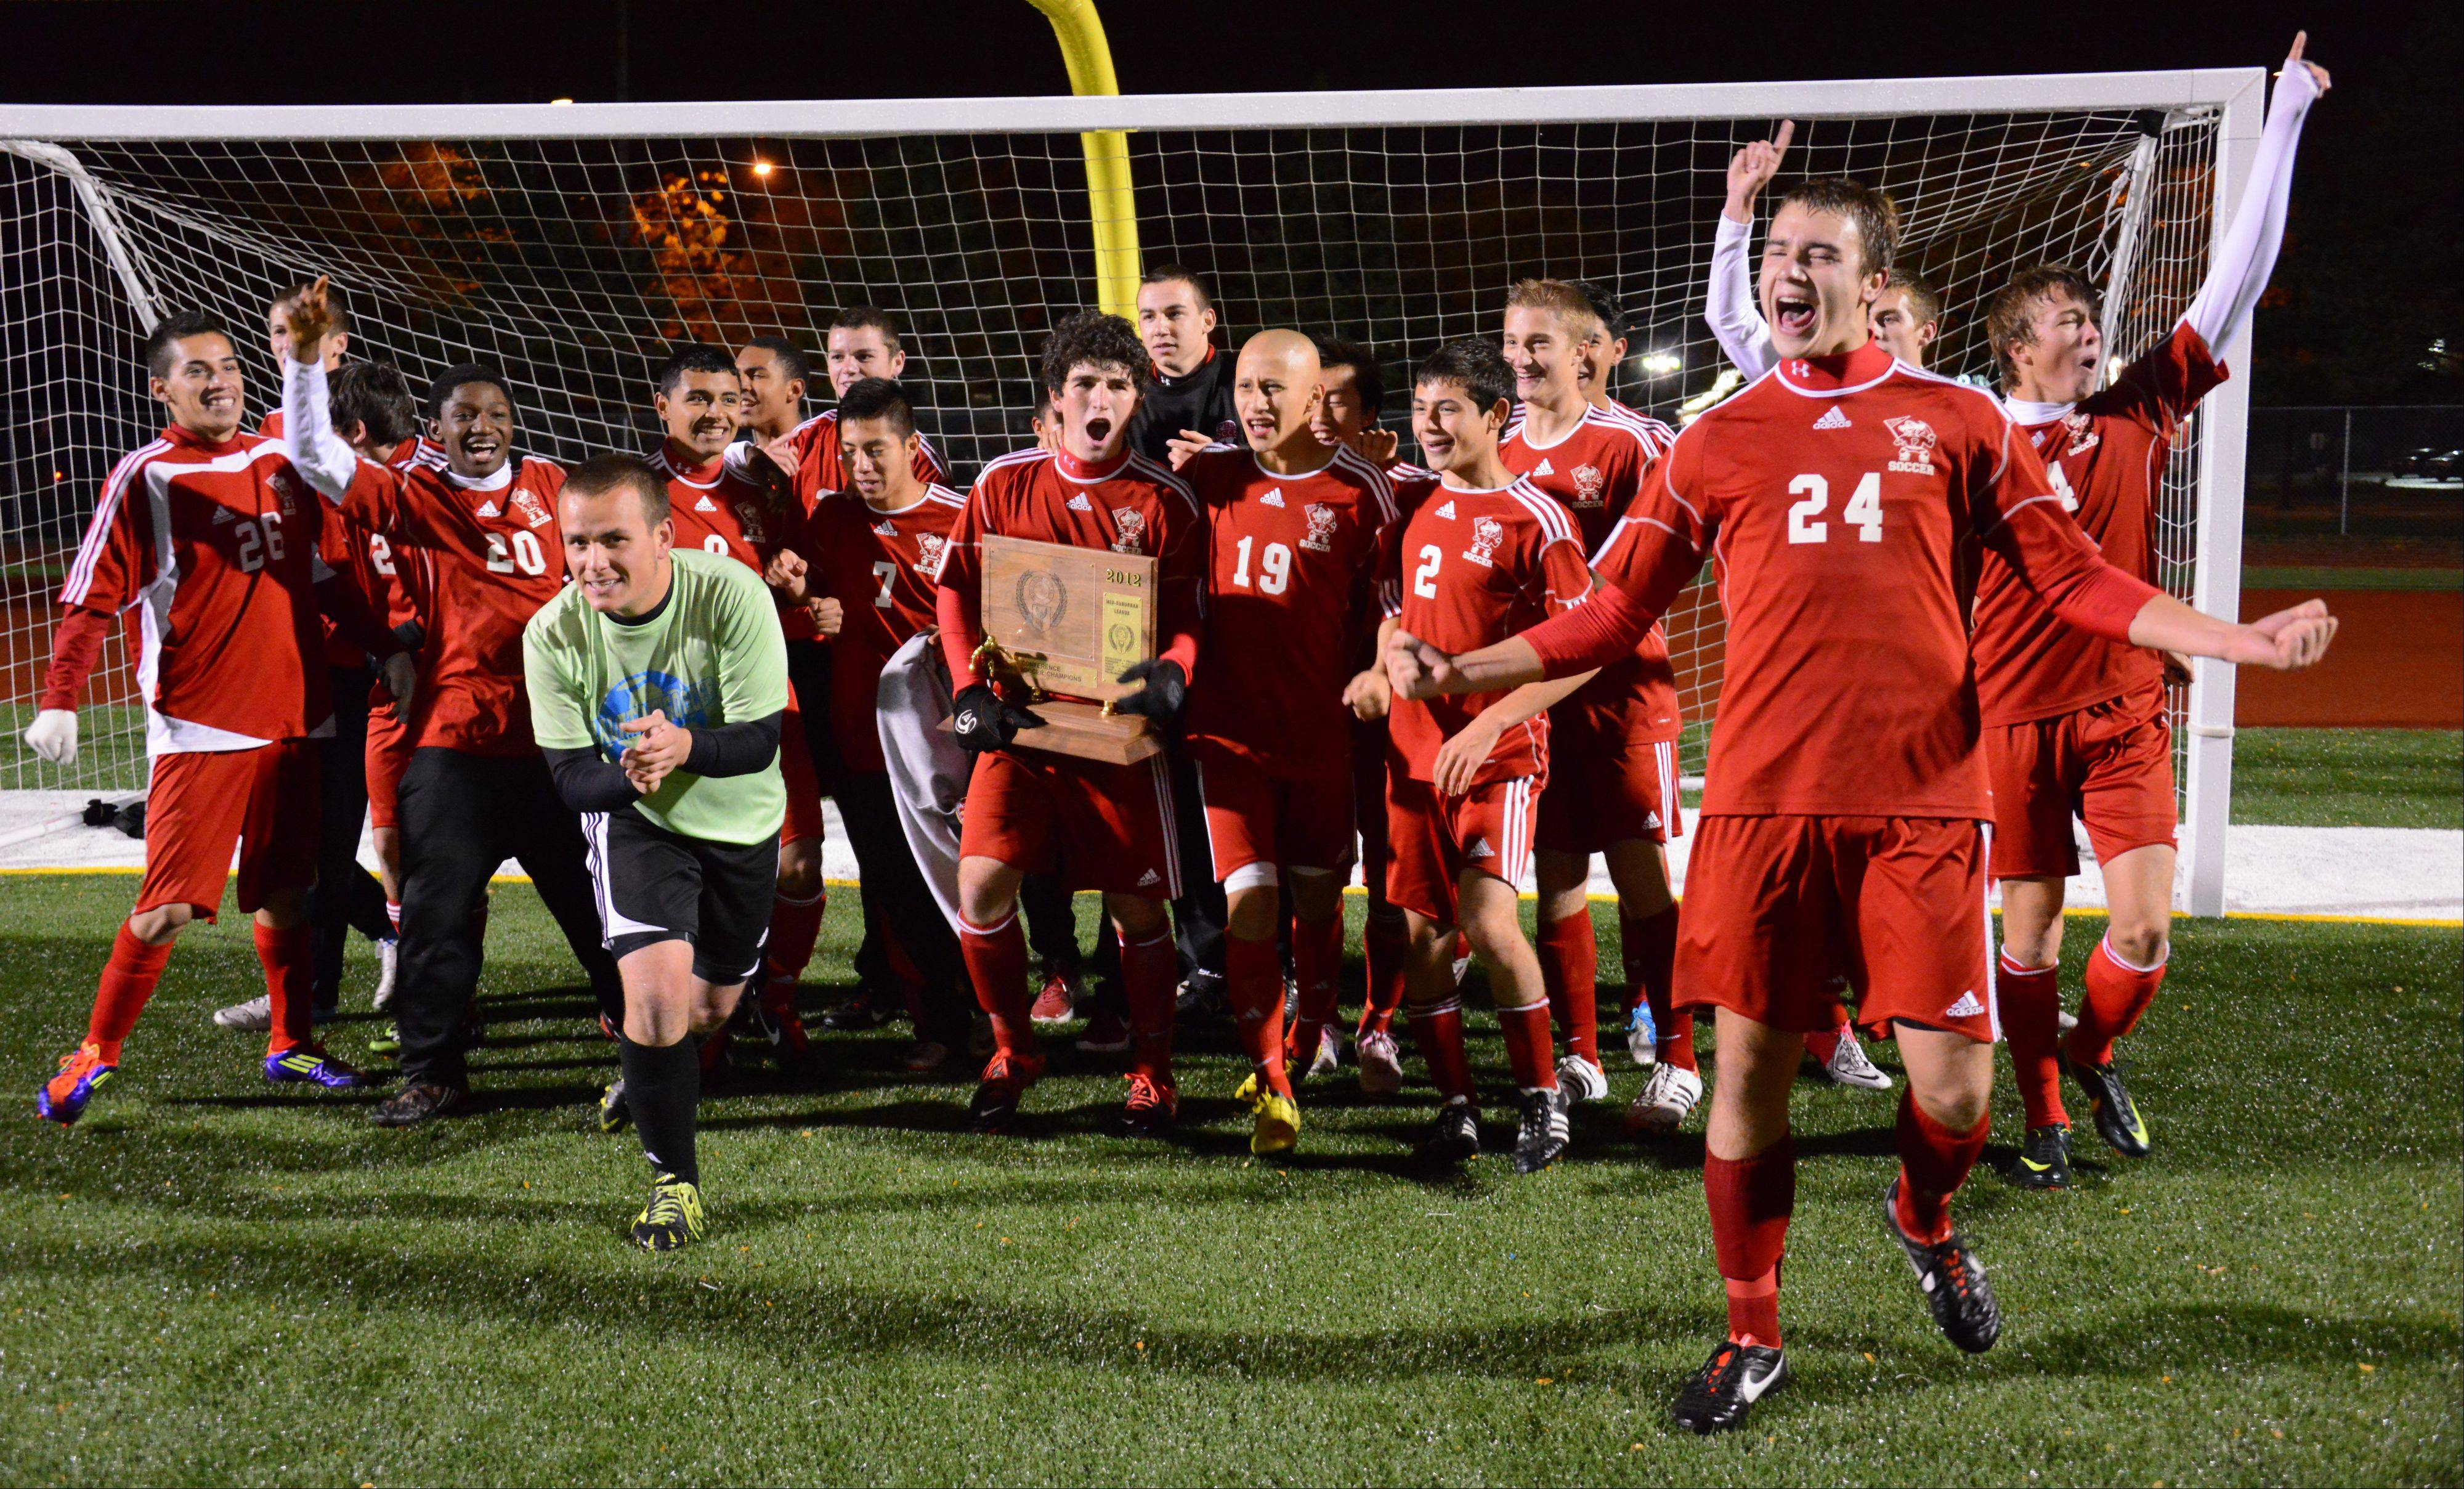 Palatine's Jeremy Velinski and his teammates erupt in excitement after winning the Mid-Suburban League championship game at Buffalo Grove High School on Thursday.